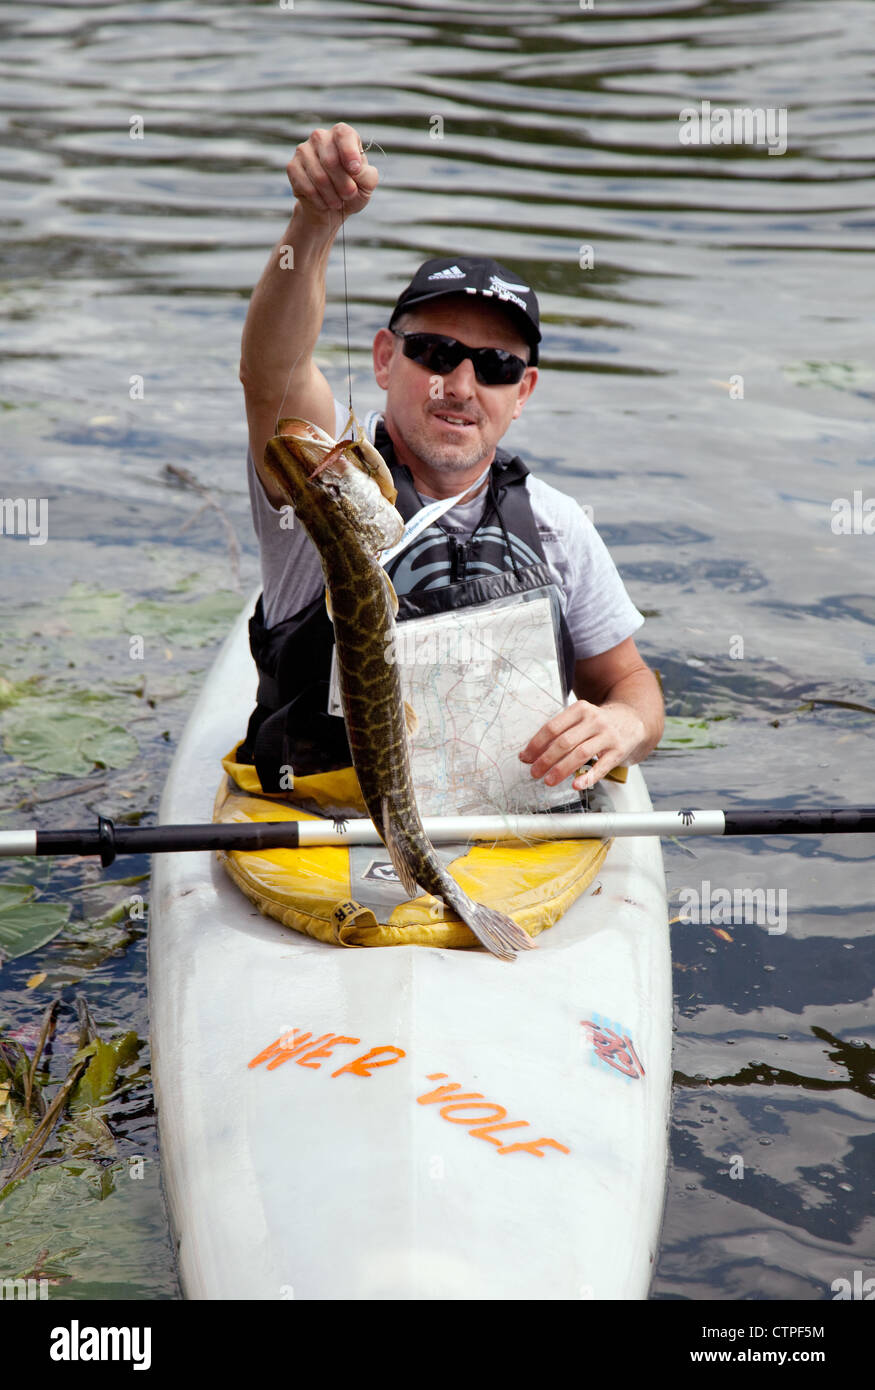 Pike Fishing Stock Photos & Pike Fishing Stock Images